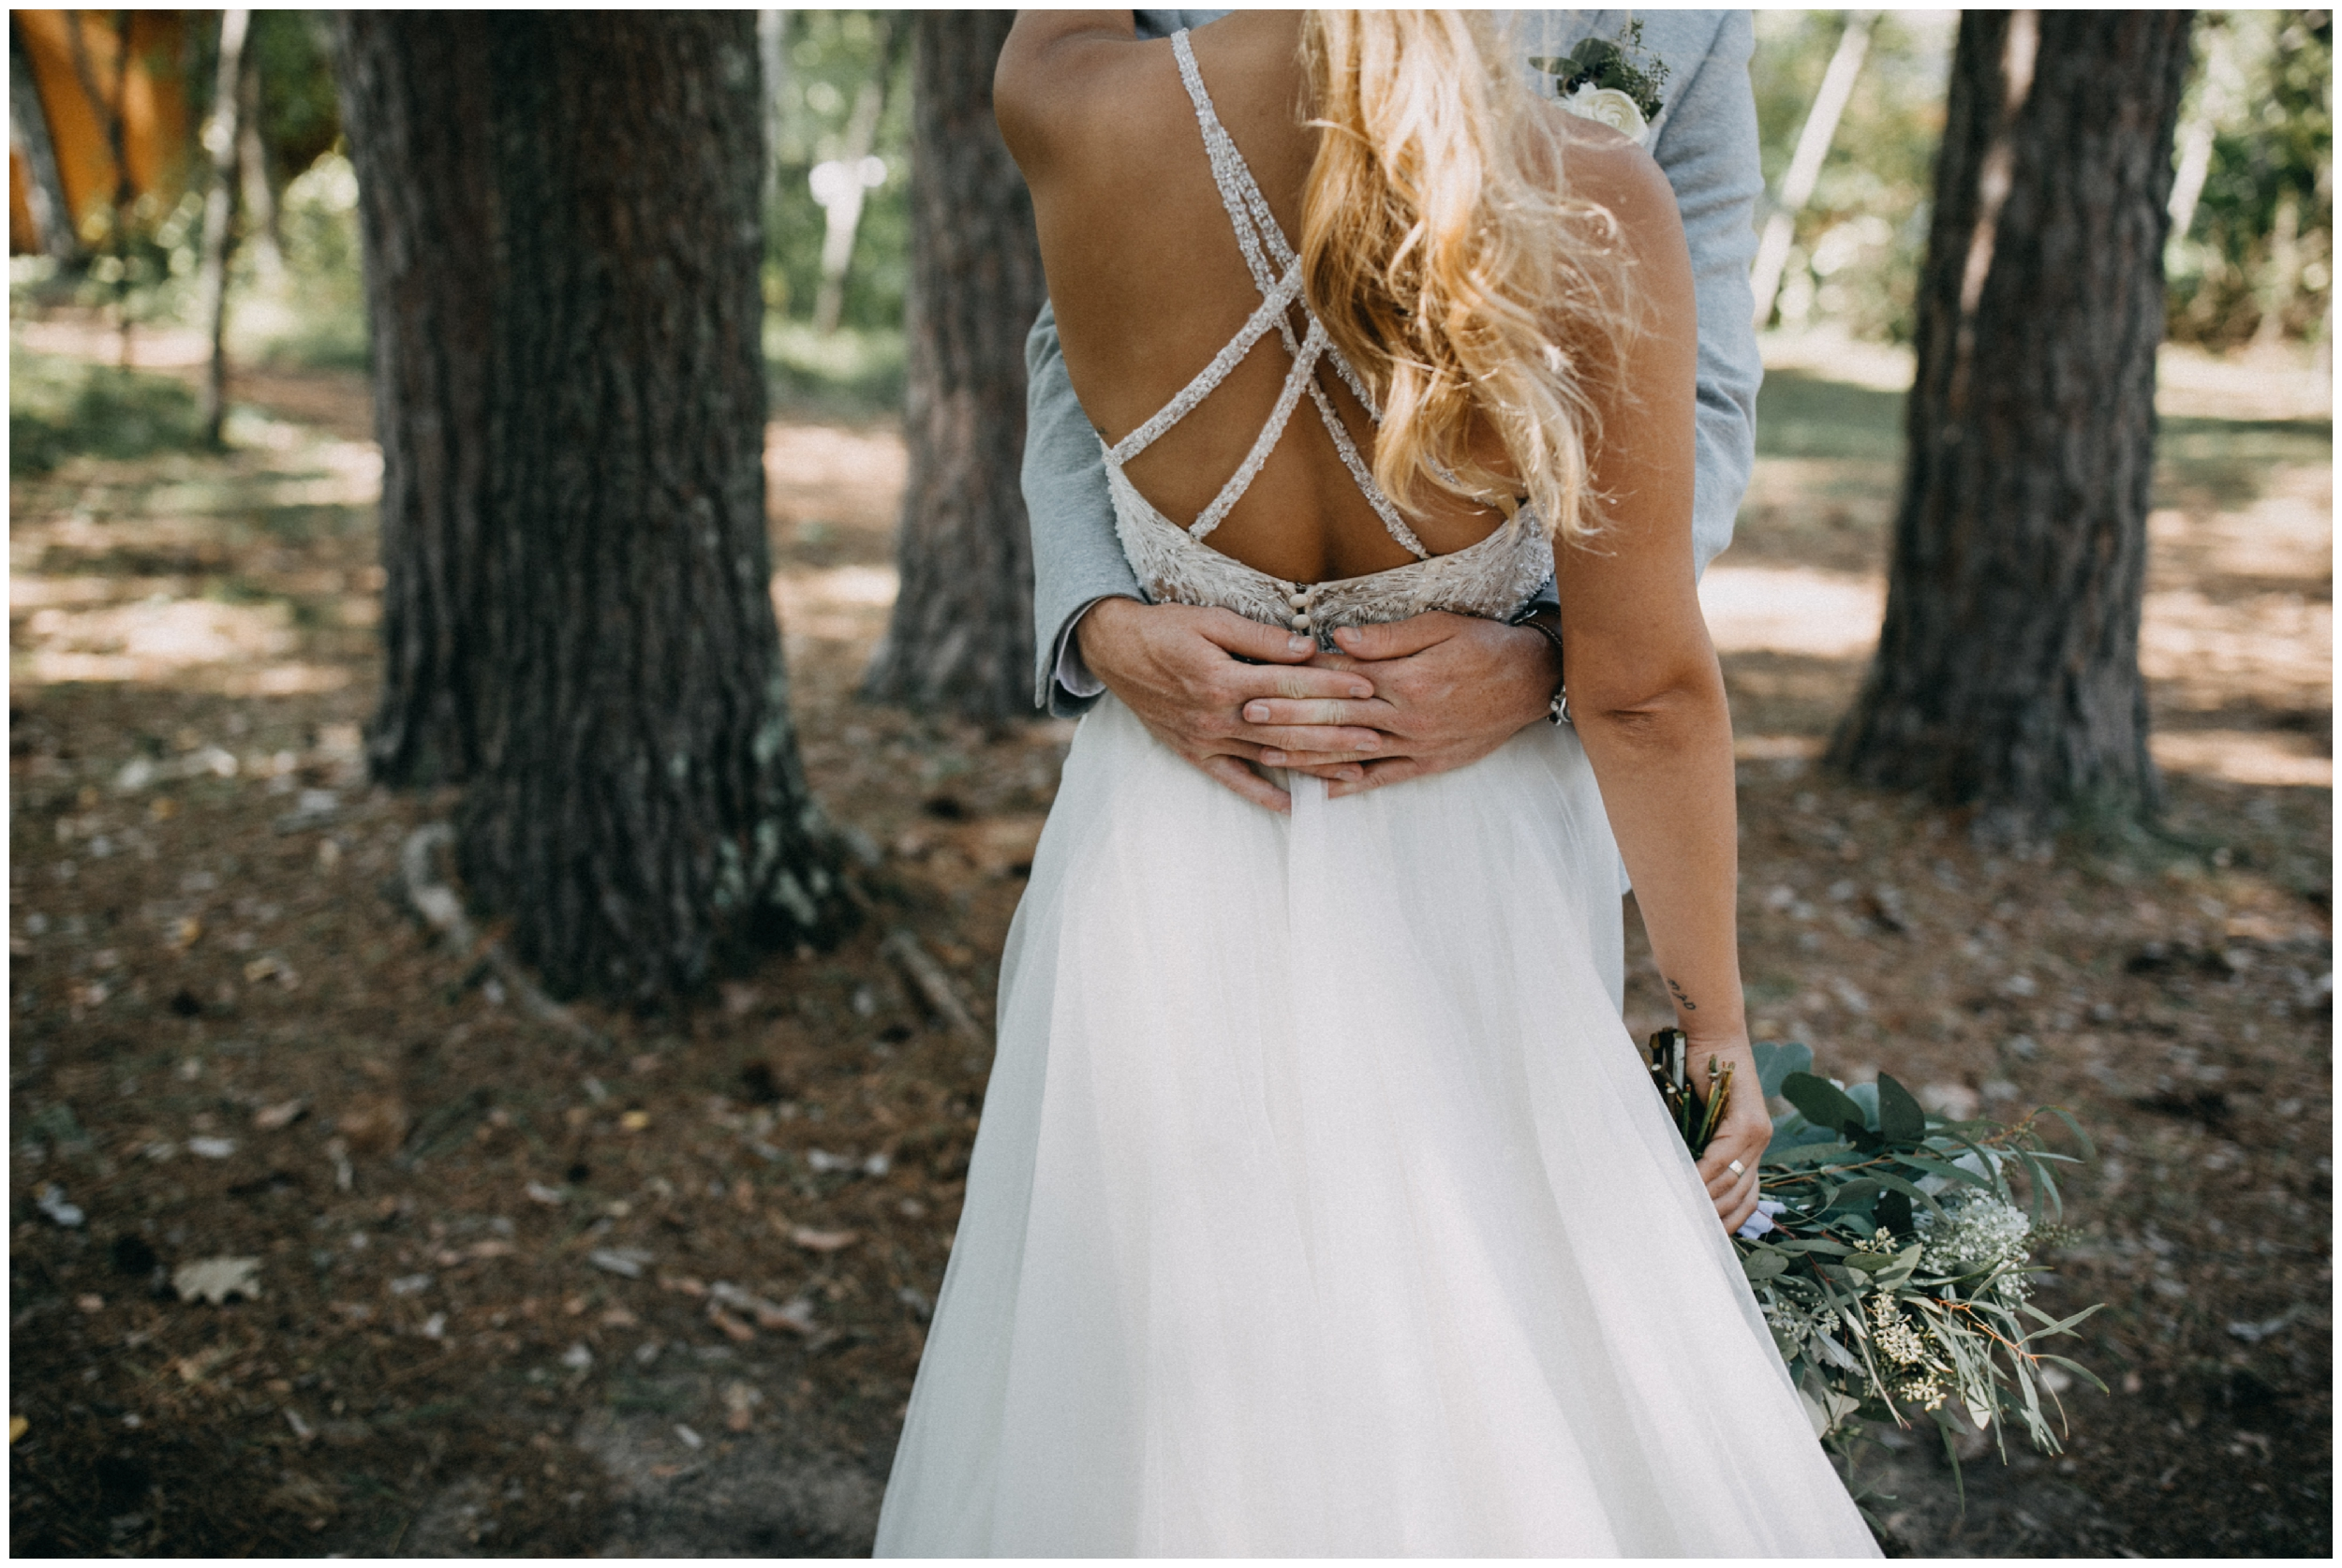 Romantic wedding in the woods at Camp Foley in Pine River, Minnesota by Britt DeZeeuw photography